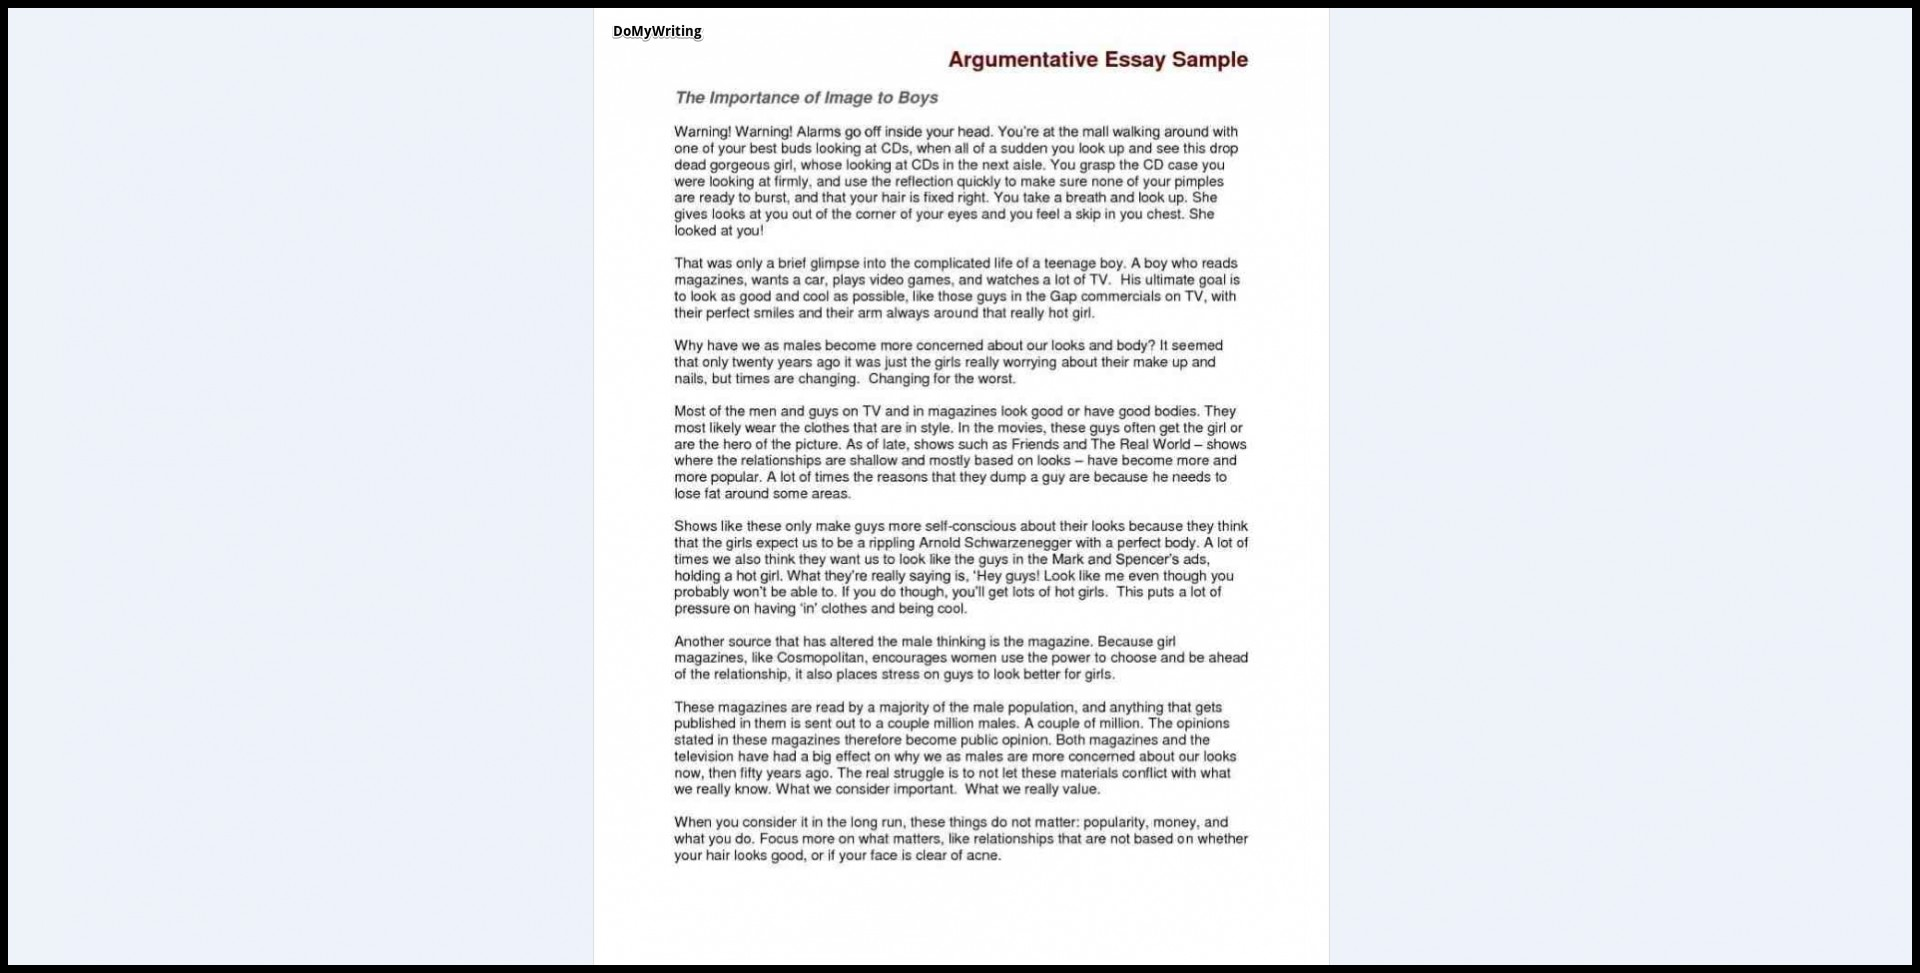 011 Argumentative Essay Sample Research Dreaded Paper Topics College Students Rubric Pdf 1920